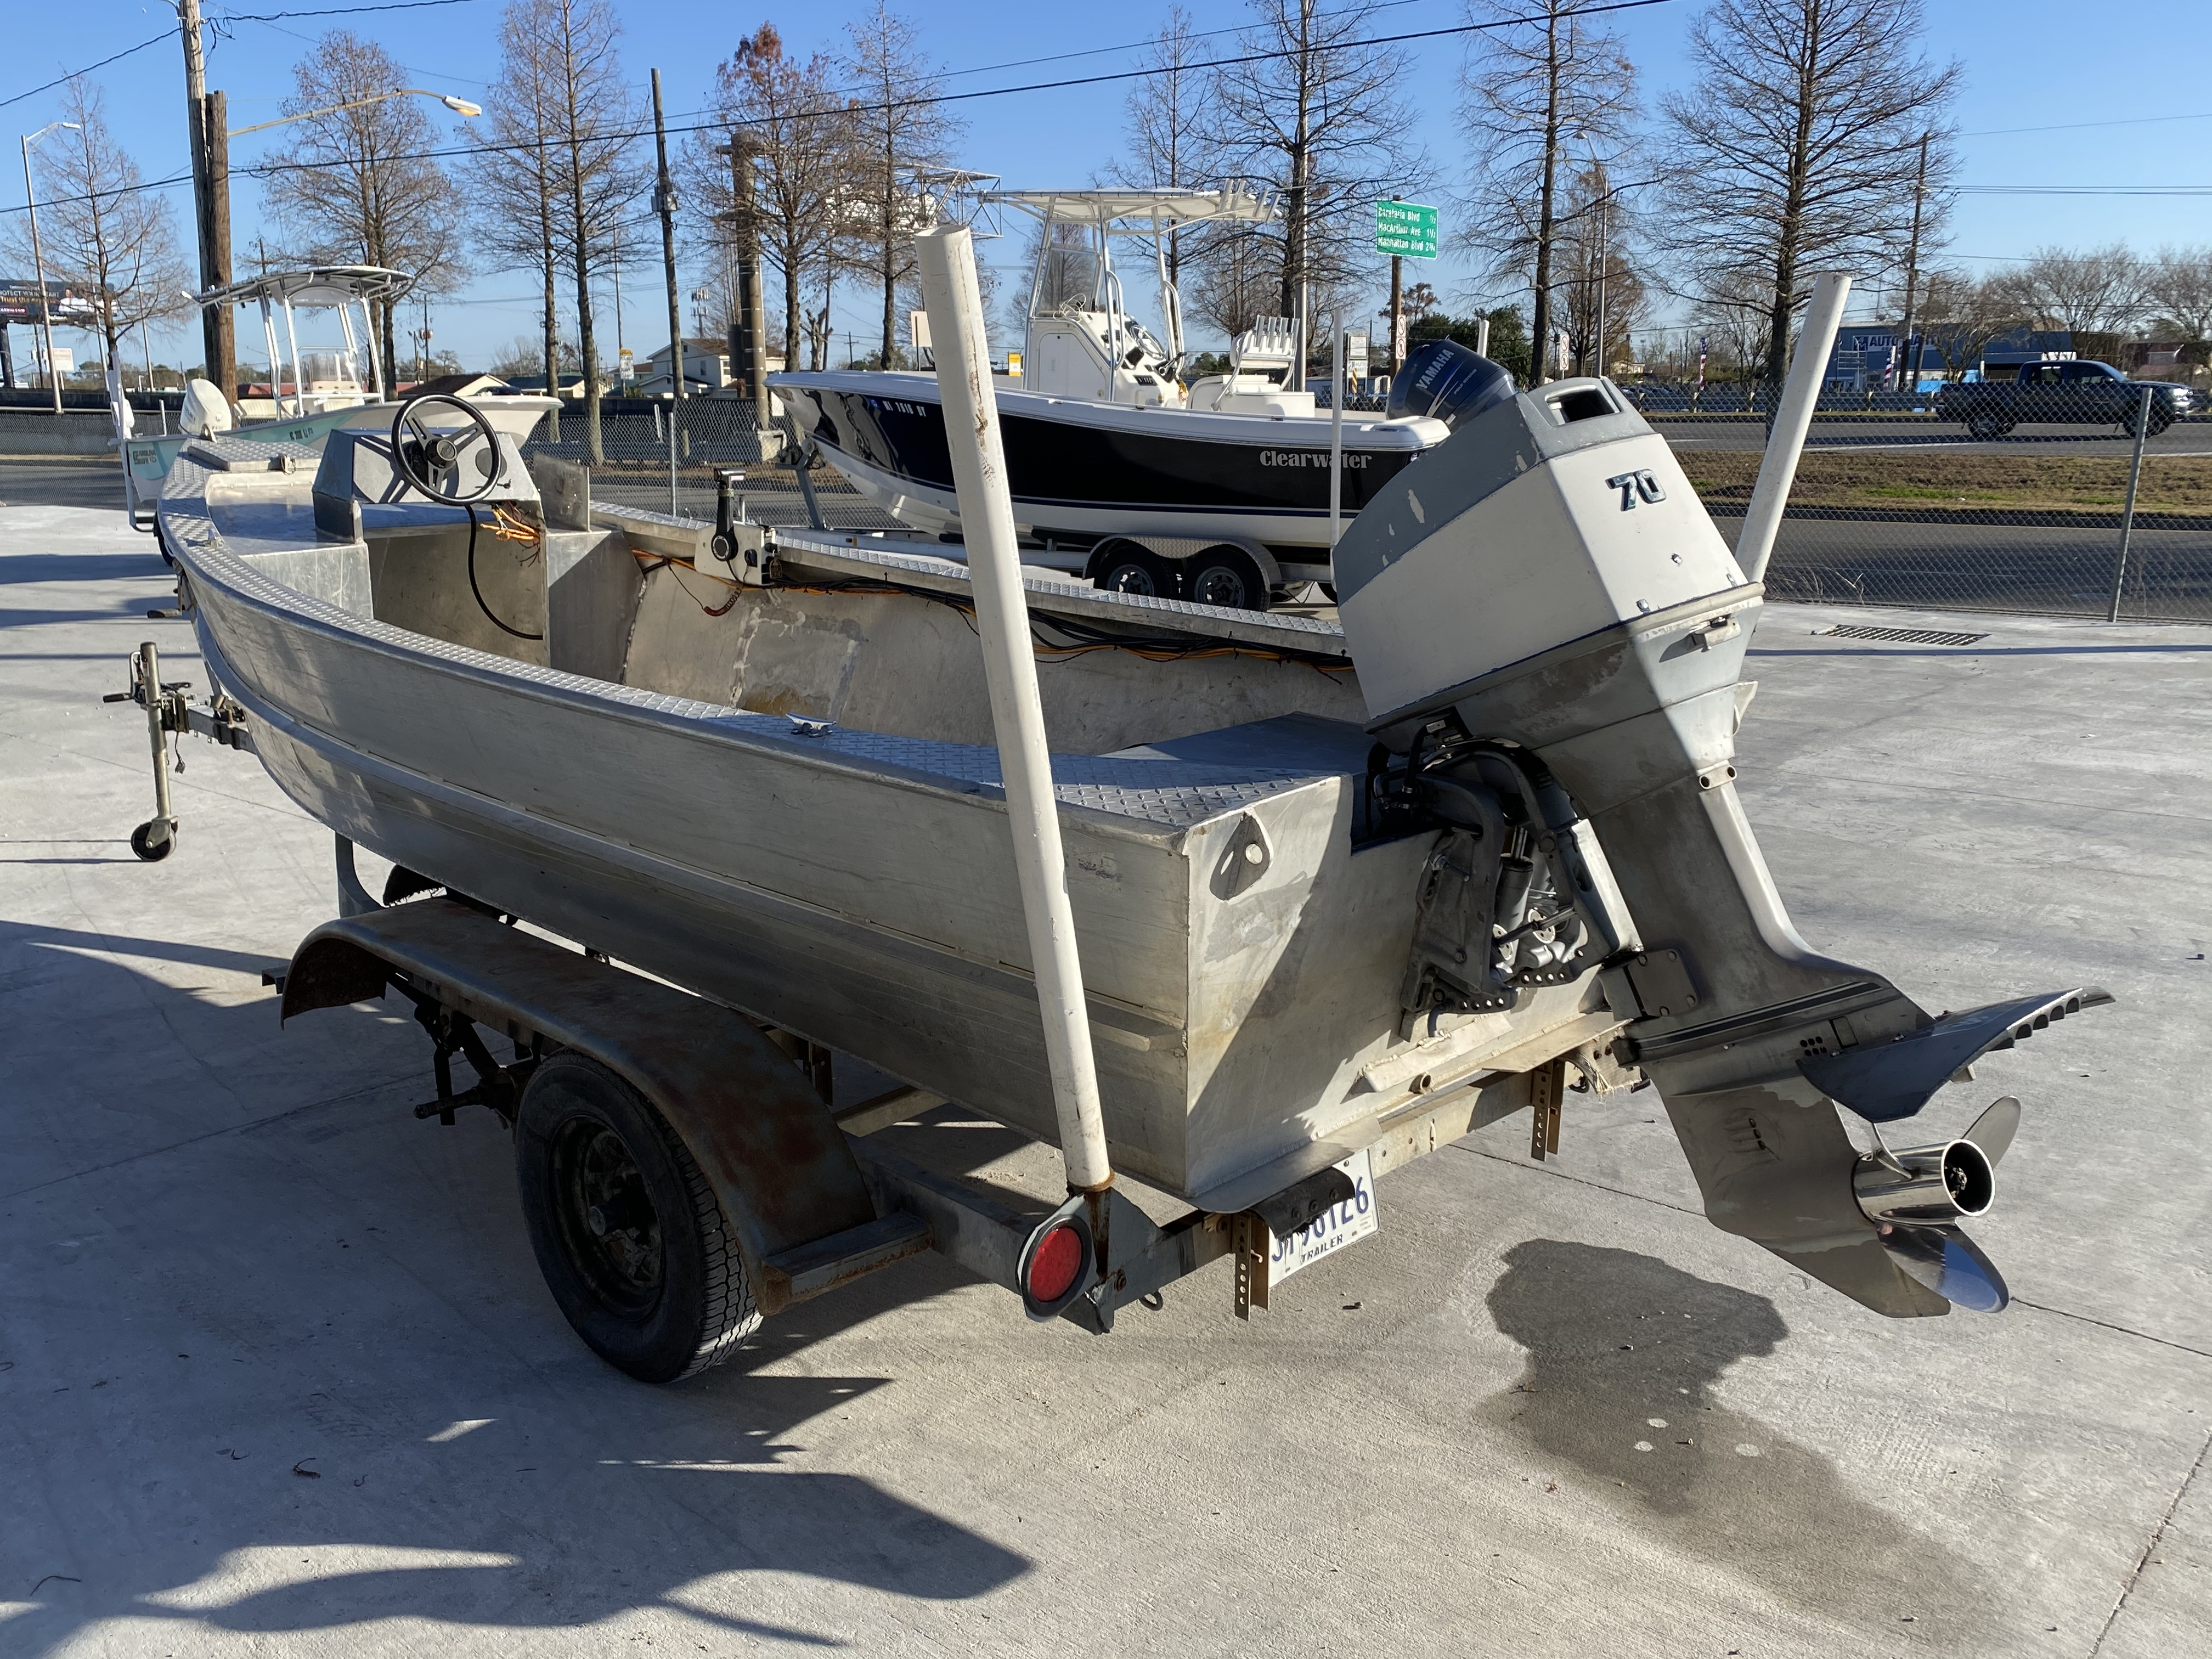 1993 Gravois boat for sale, model of the boat is 17 Skiff & Image # 8 of 8